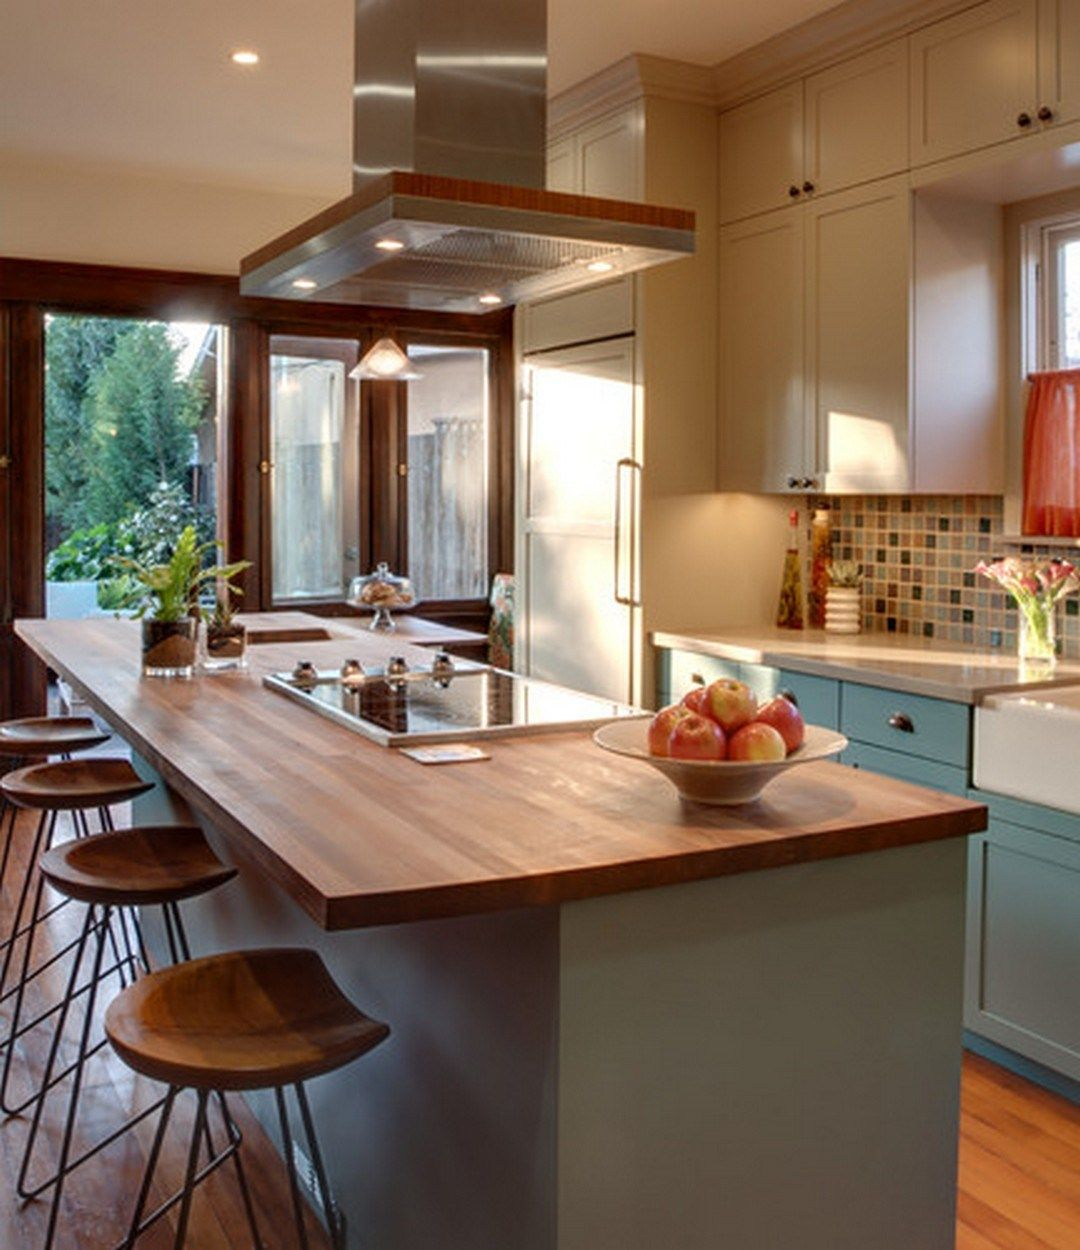 Creative Kitchen Islands With Stove Top Makeover Ideas 26 Kitchen Island With Sink Kitchen Island Decor Kitchen Island With Seating